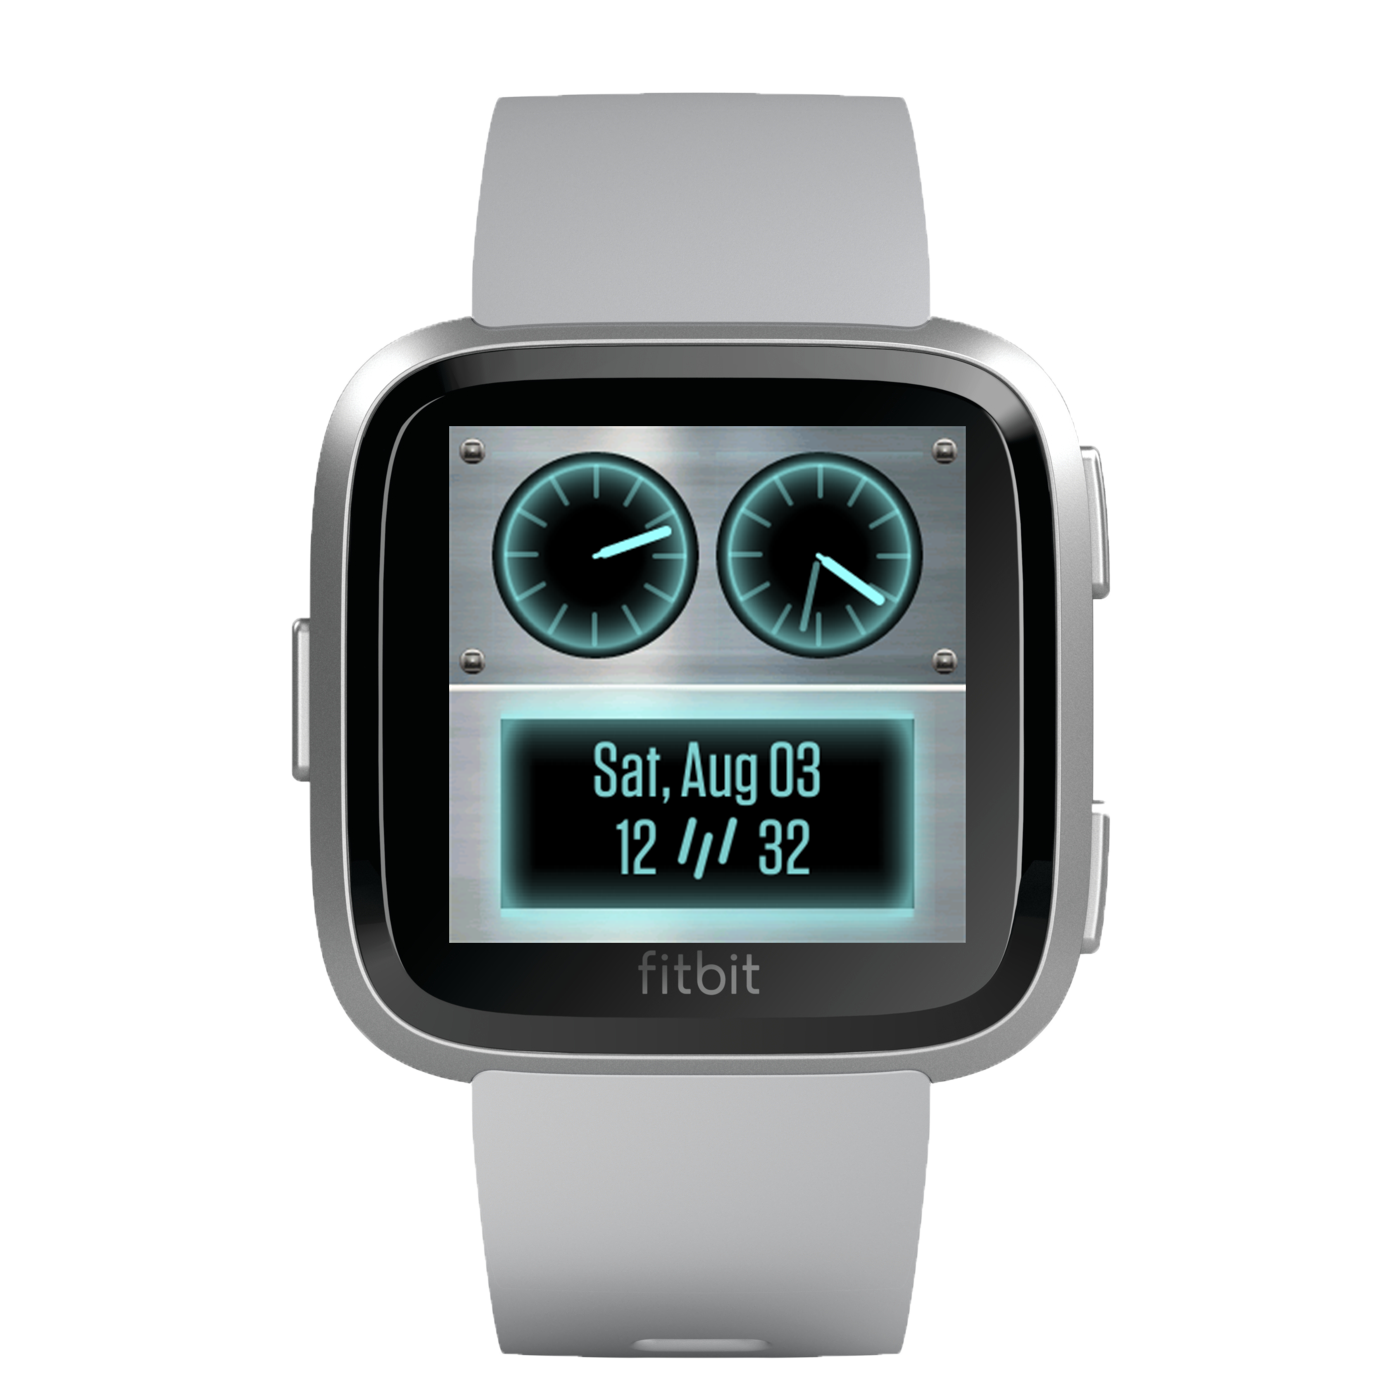 www.watchfacestore.com has amazing #fitbit #watchfaces. Get to know the Robot. The robot face shows...